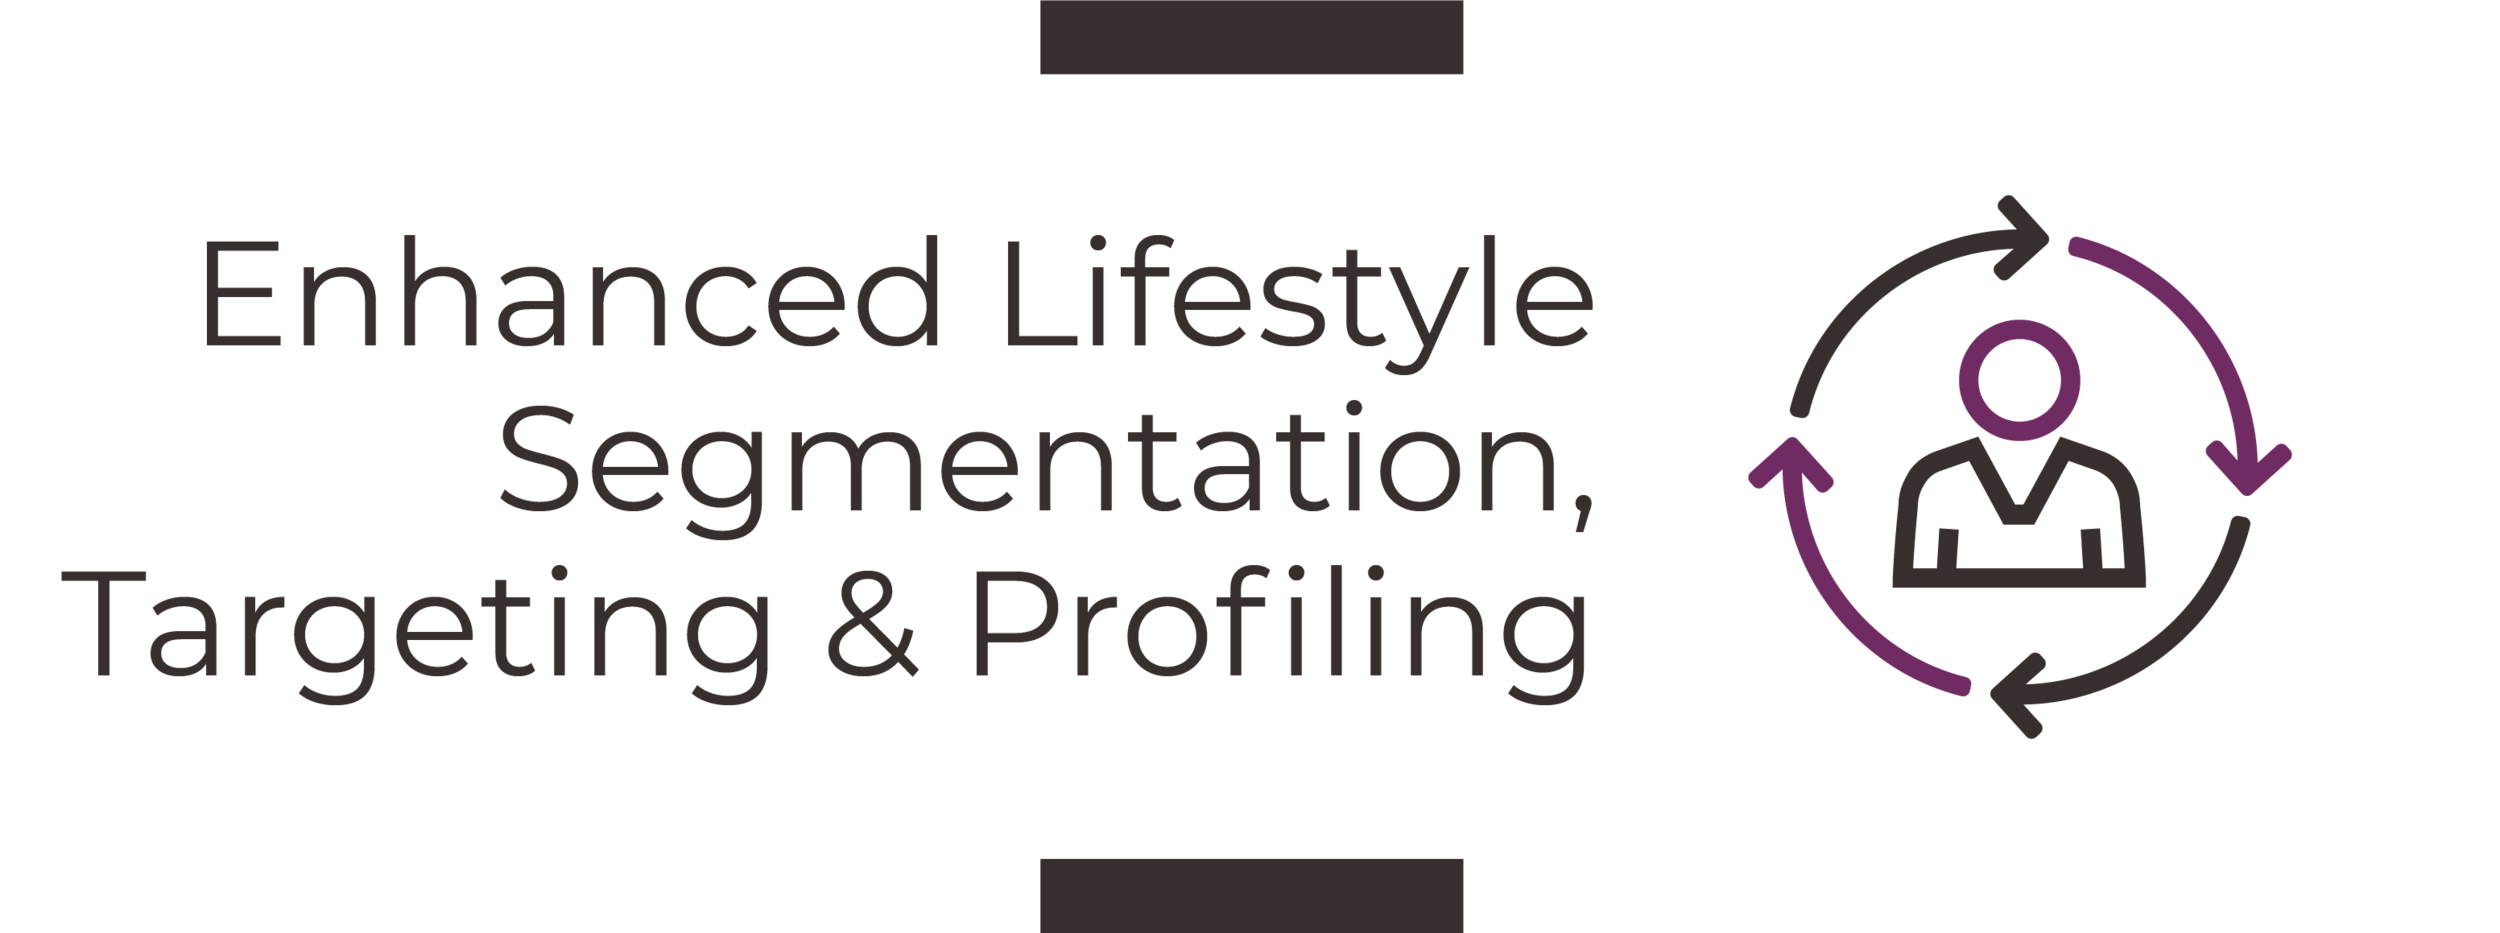 Enhanced Lifestyle Segmentation, Targeting & Profiling